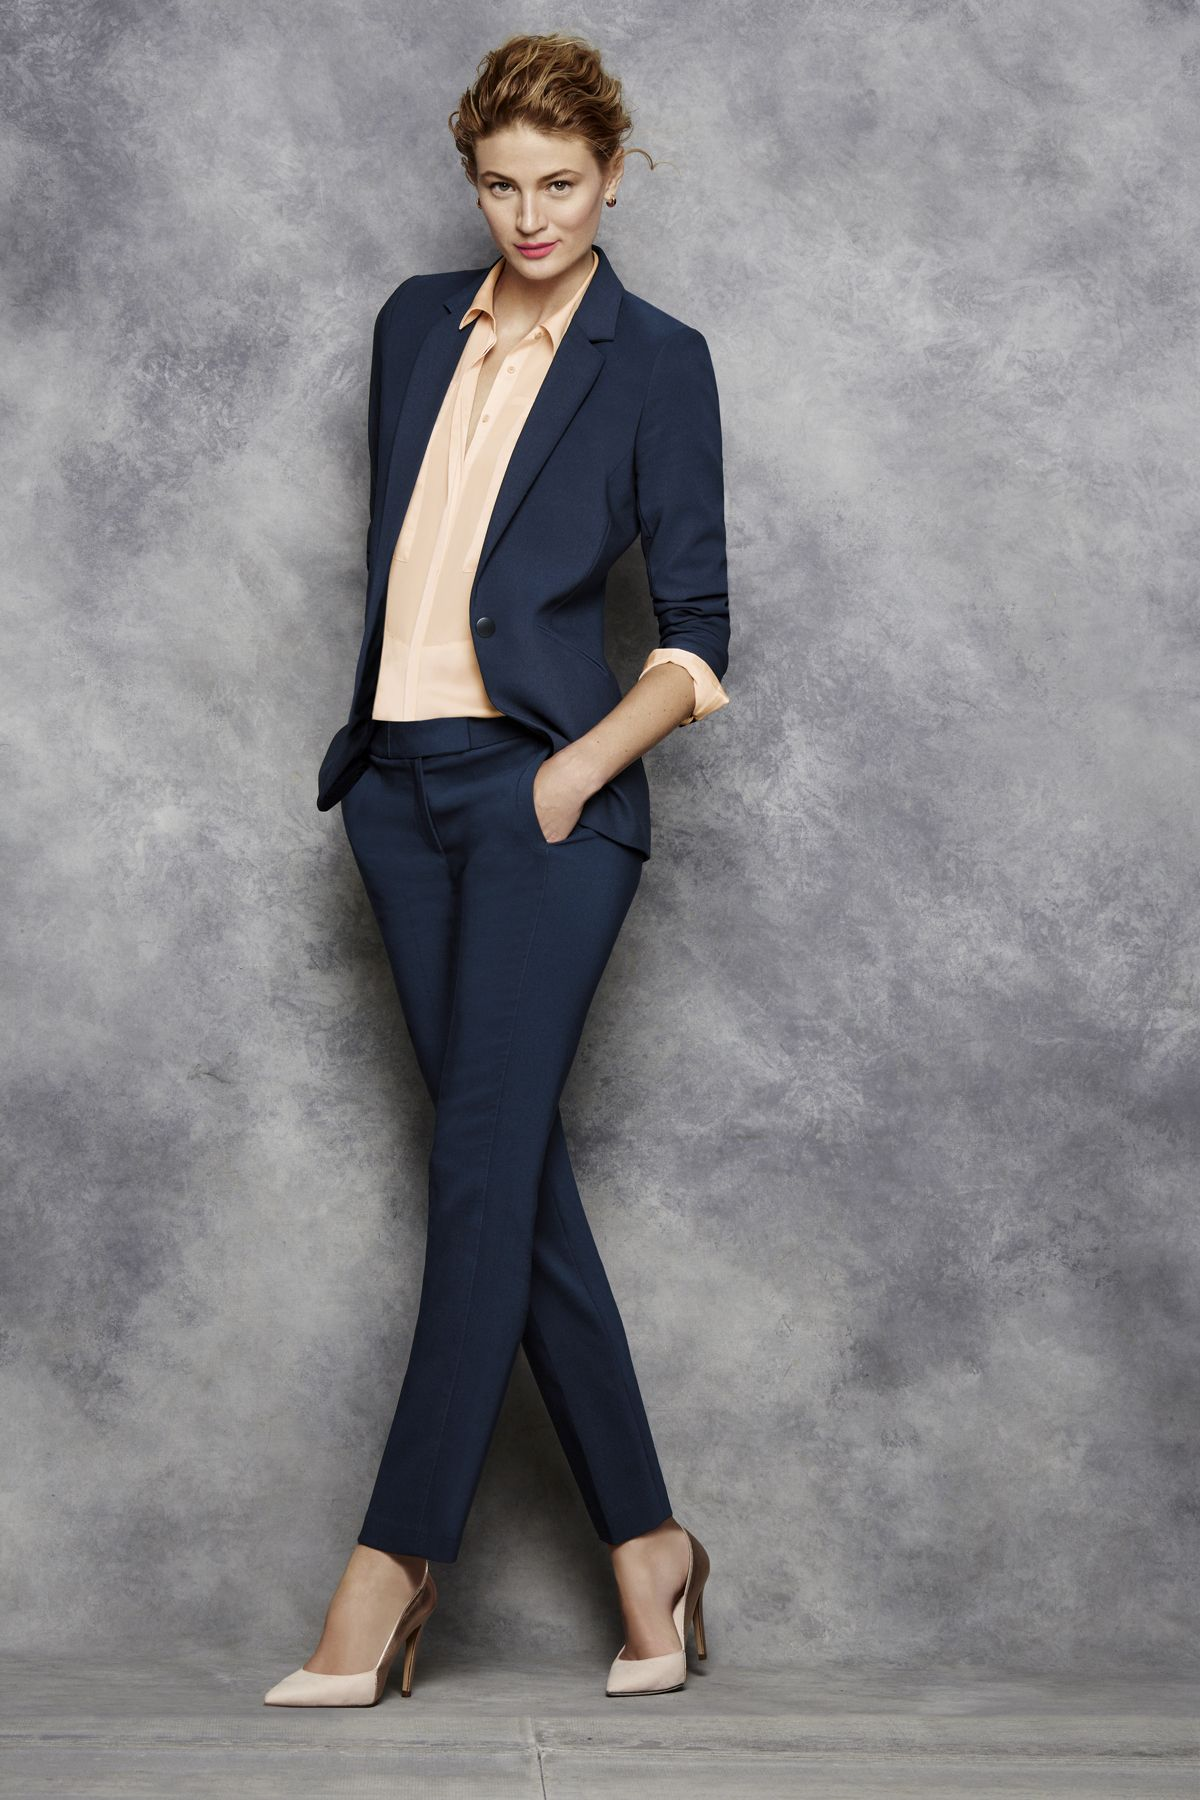 Introducing Willow Thread A New And Exclusive Wear To Work